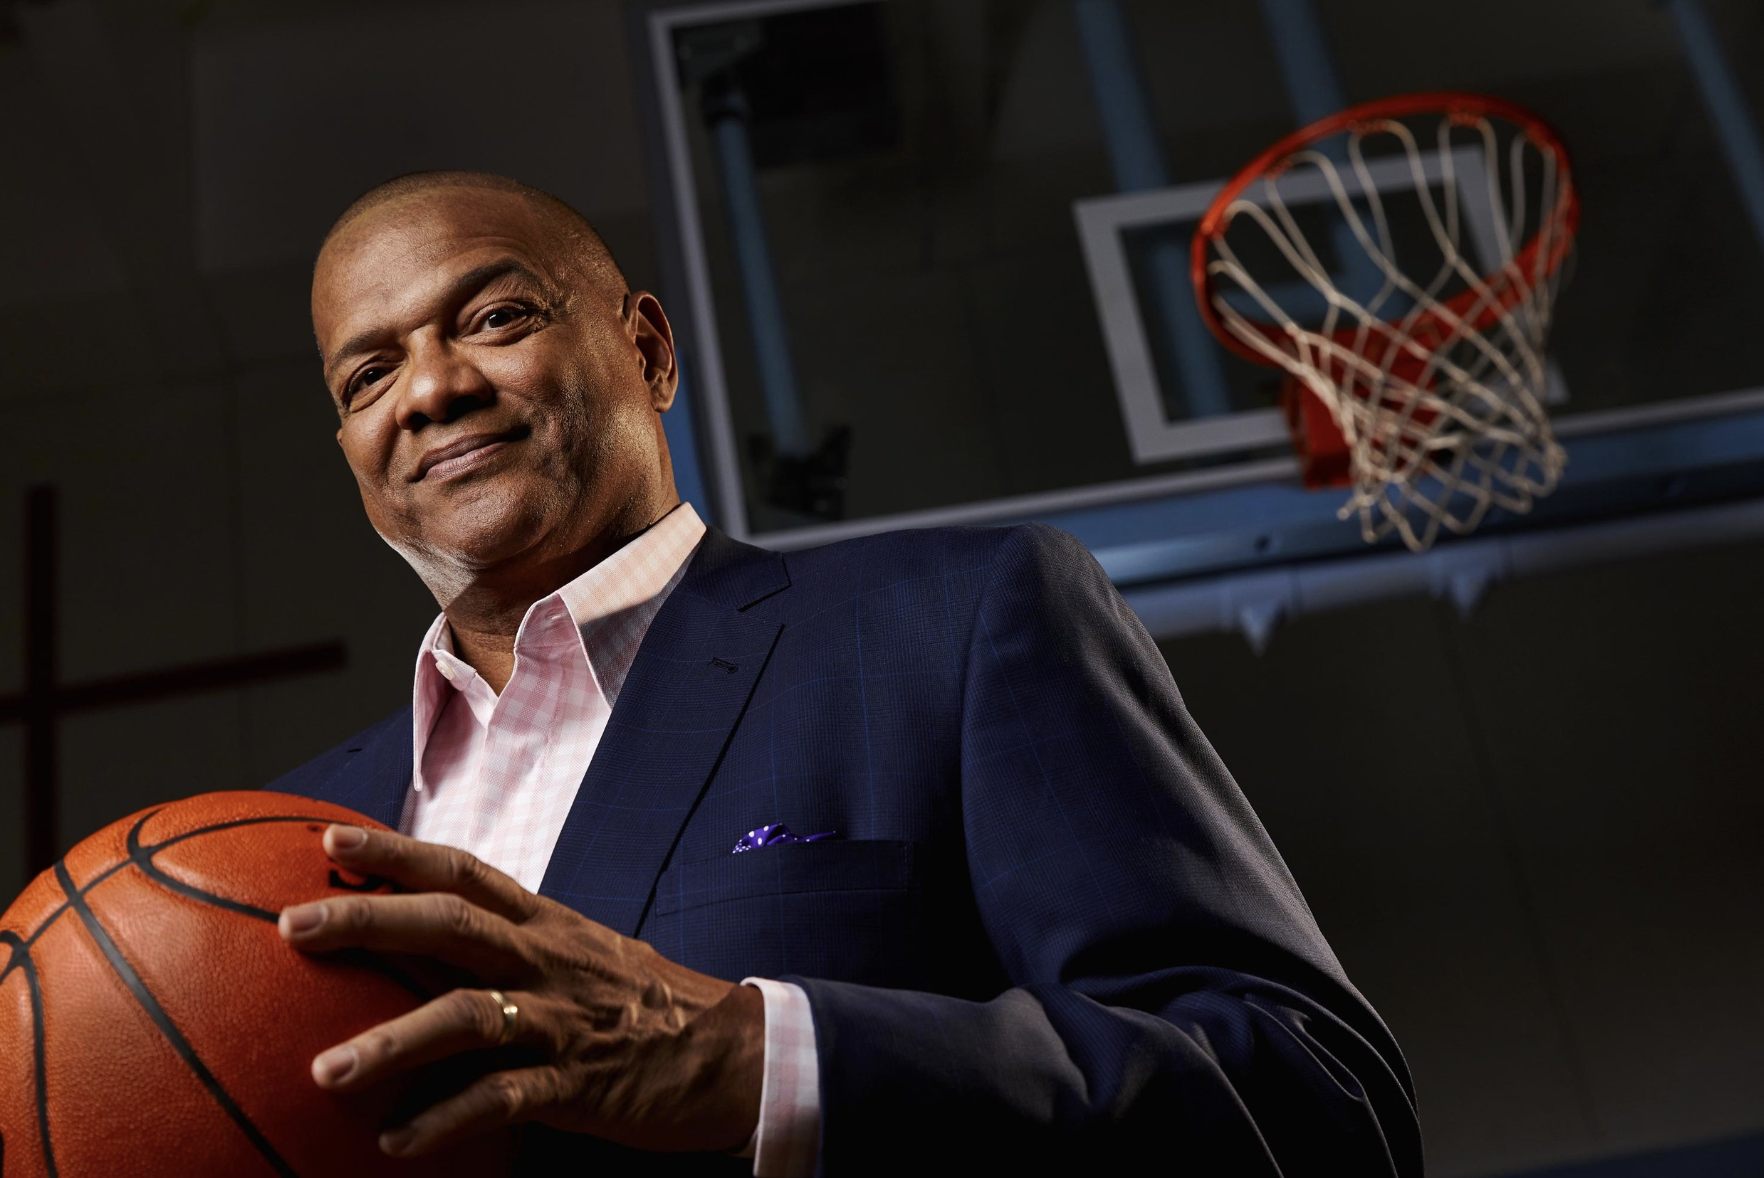 """UGP's comprehensive - approach has made golf more enjoyable than I could've ever imagined. Mac Todd had a vision he shared with me years ago and I have witnessed first hand, with an amazed appreciation, the vision become reality.""Marques Johnson5 x NBA All-Star"